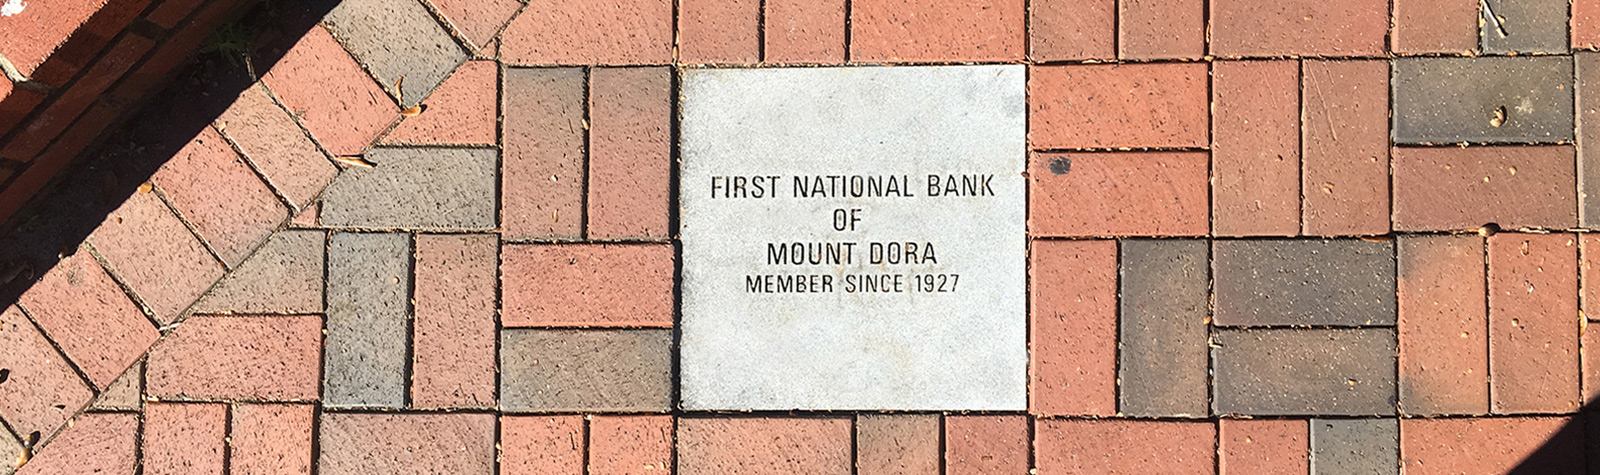 brick paver with First National Bank of Mount Dora dates